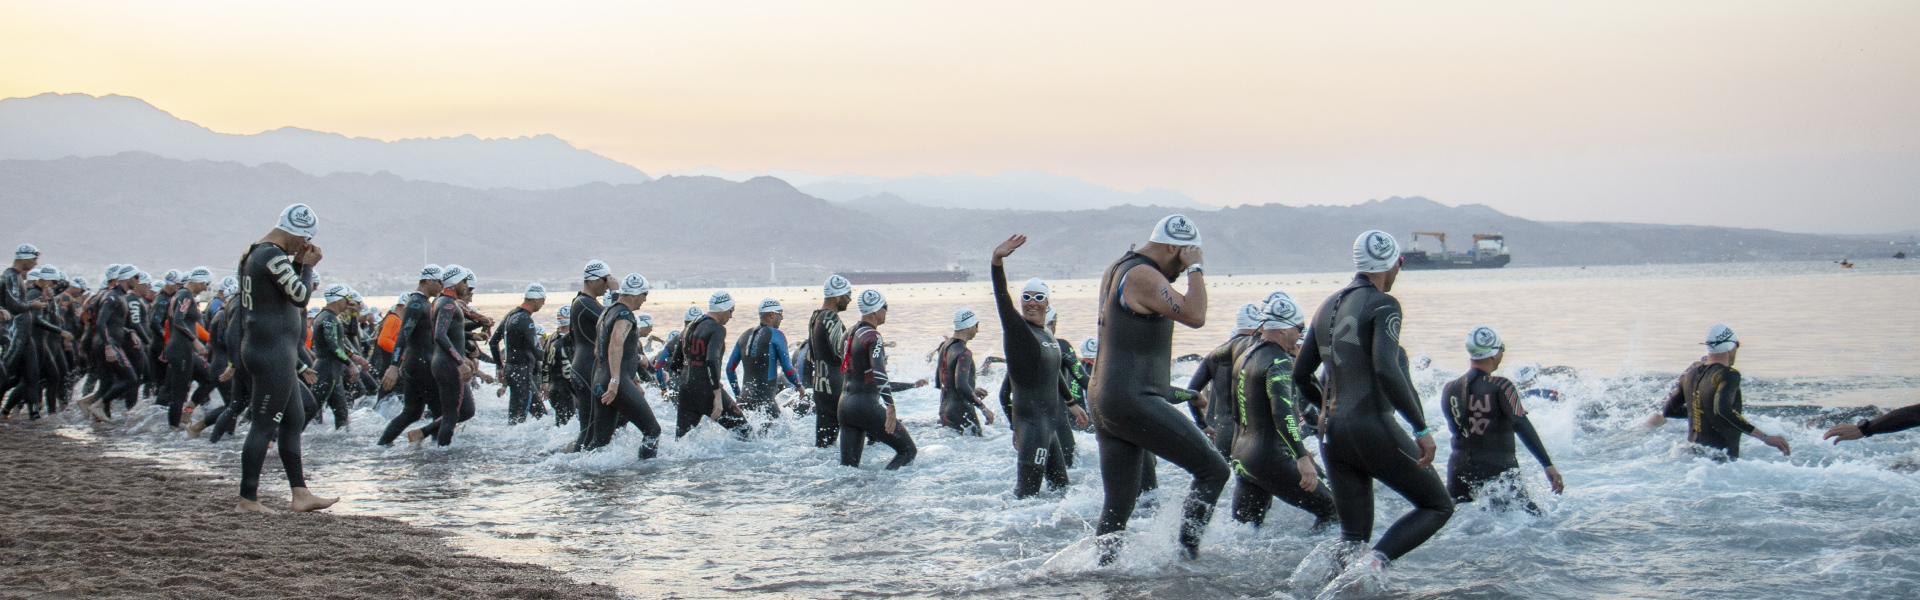 10 Fun Christmas & New Year Swim Events in the UK